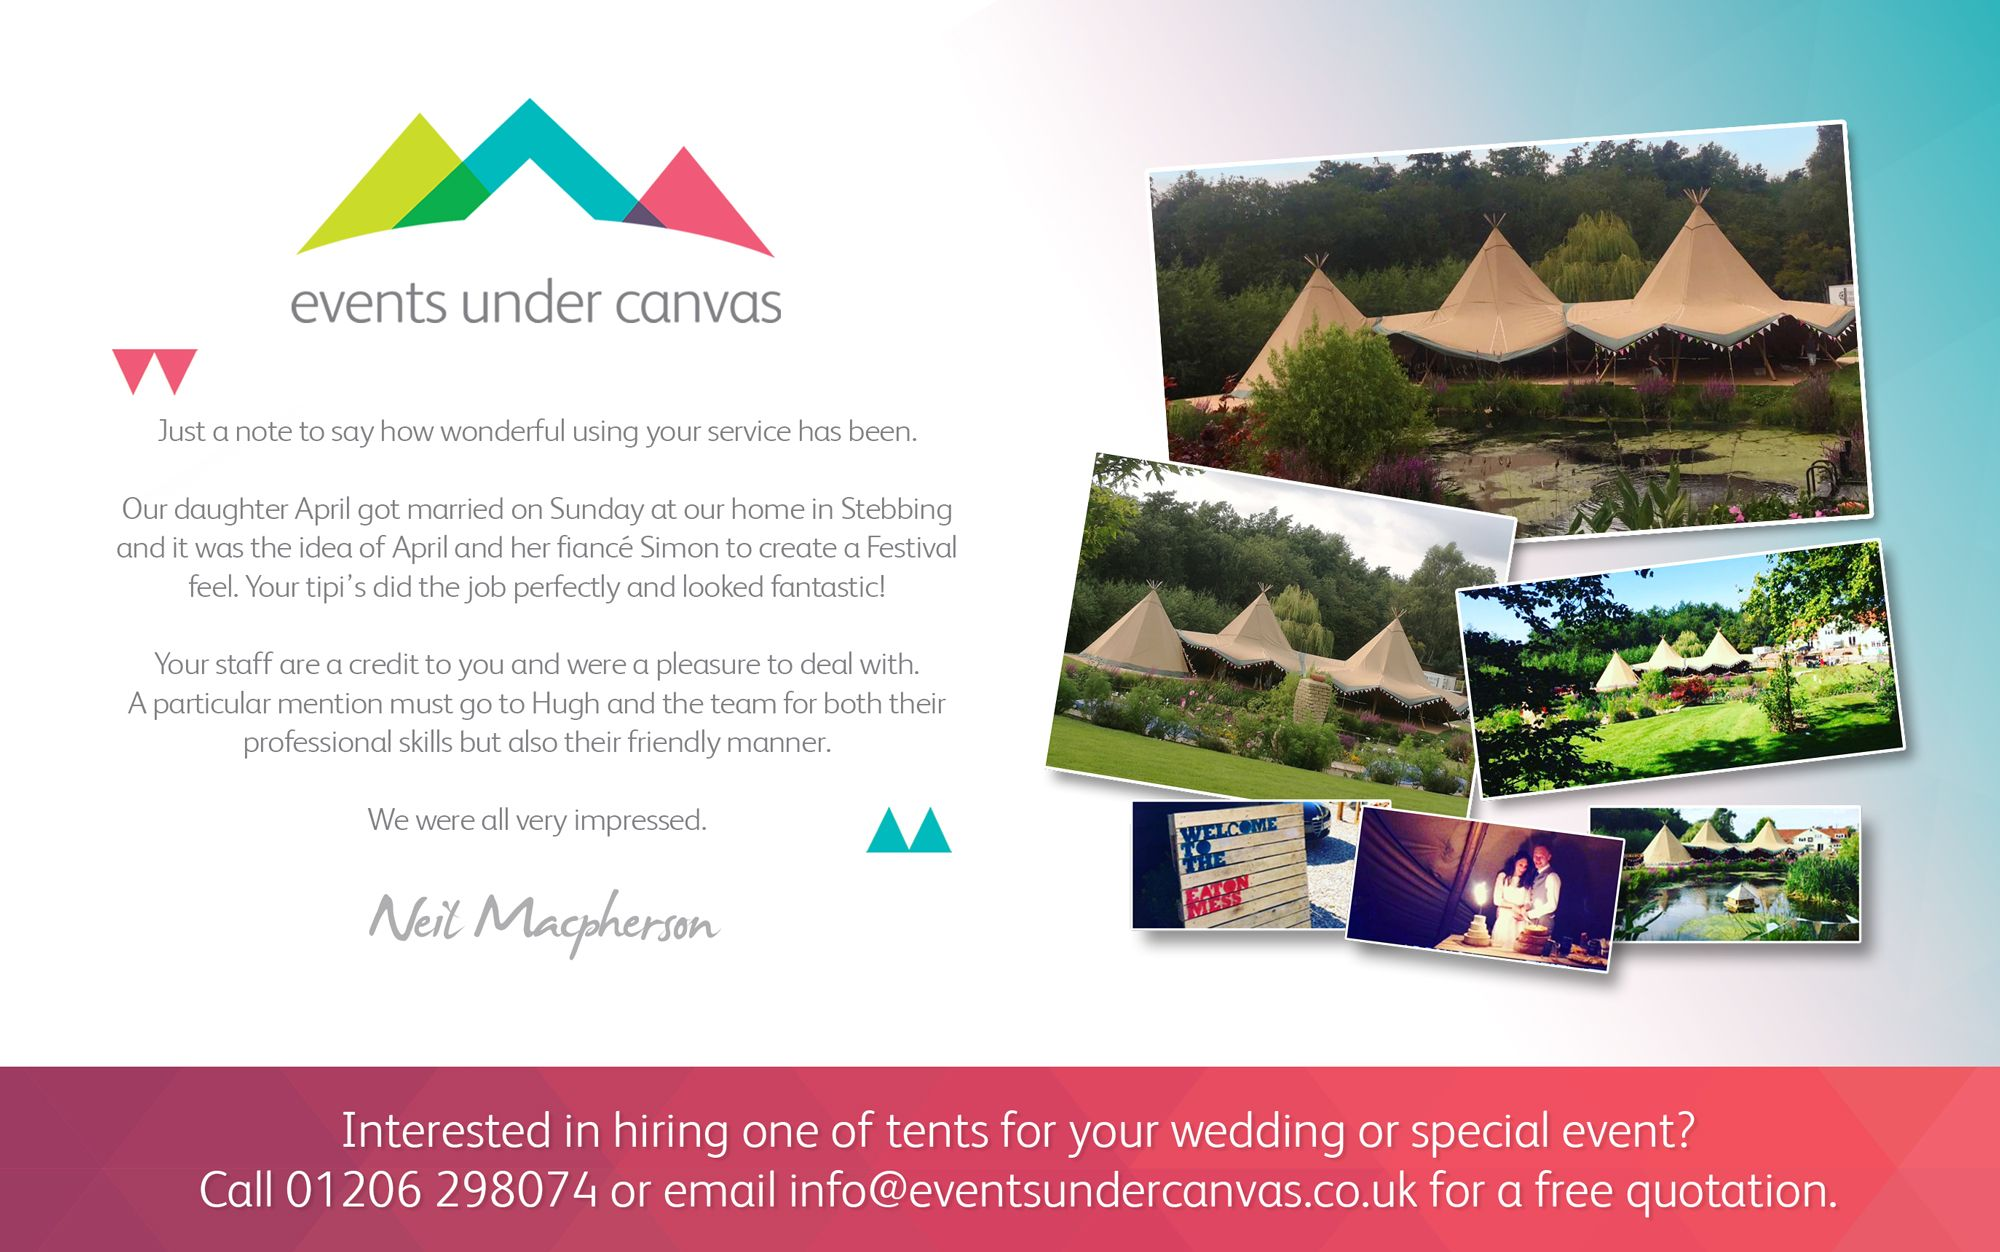 Sailcloth Tent & Tipi Hire Reviews in August - Events Under